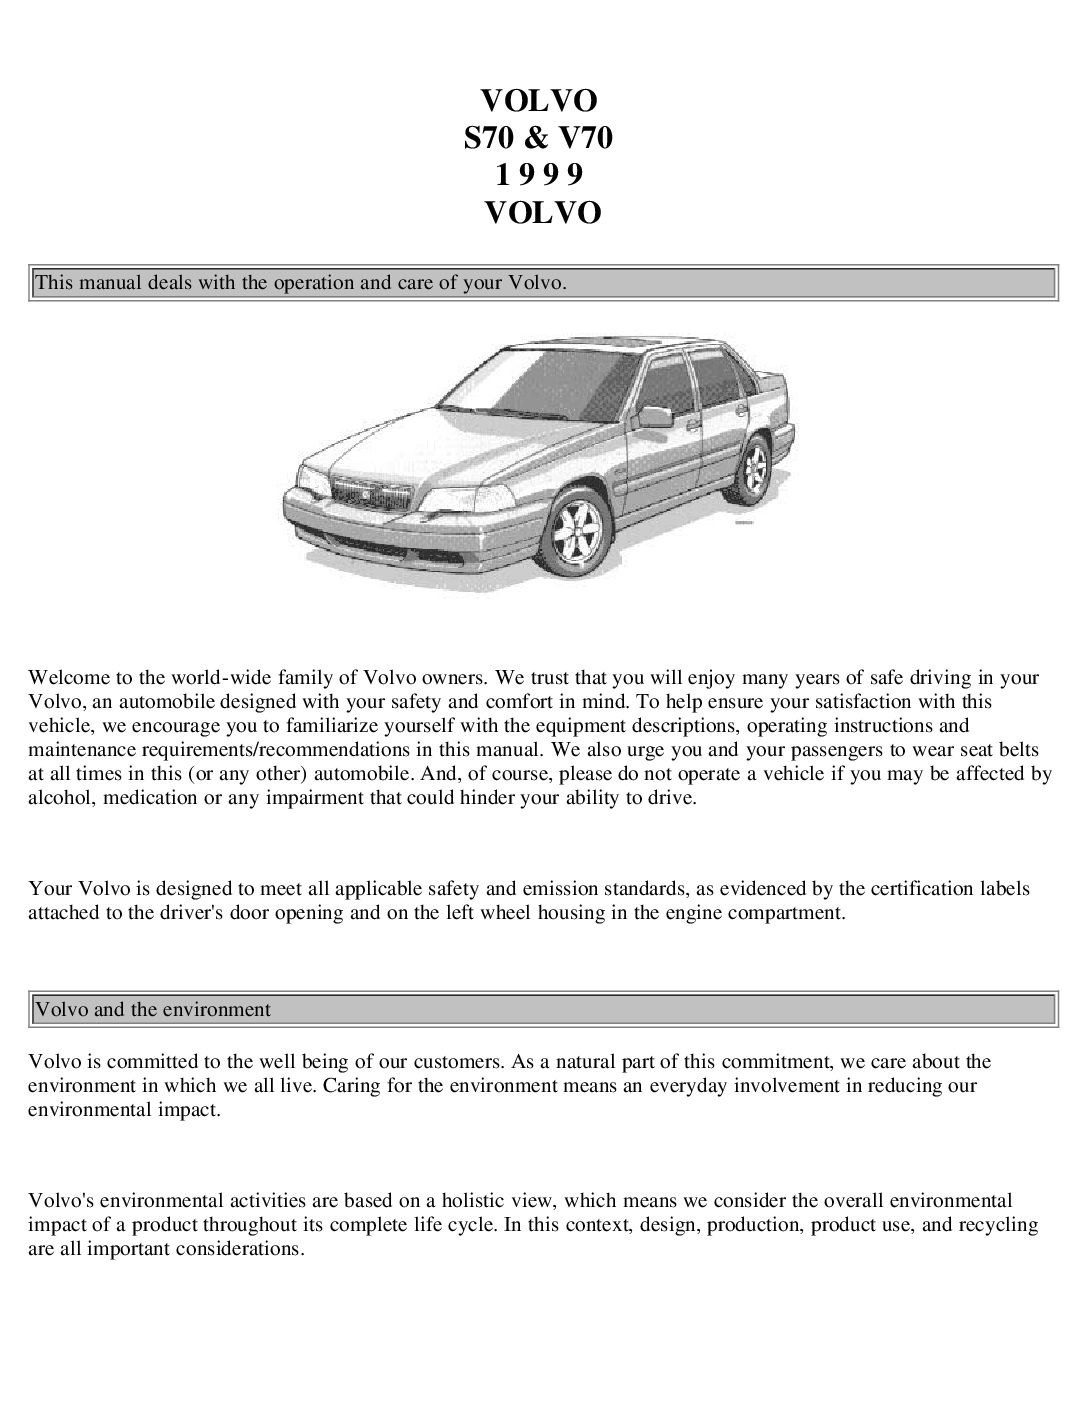 1999 volvo s70 v70 owners manual just give me the damn manual rh justgivemethedamnmanual com 1963 Ford Falcon iPhone Owners Manual